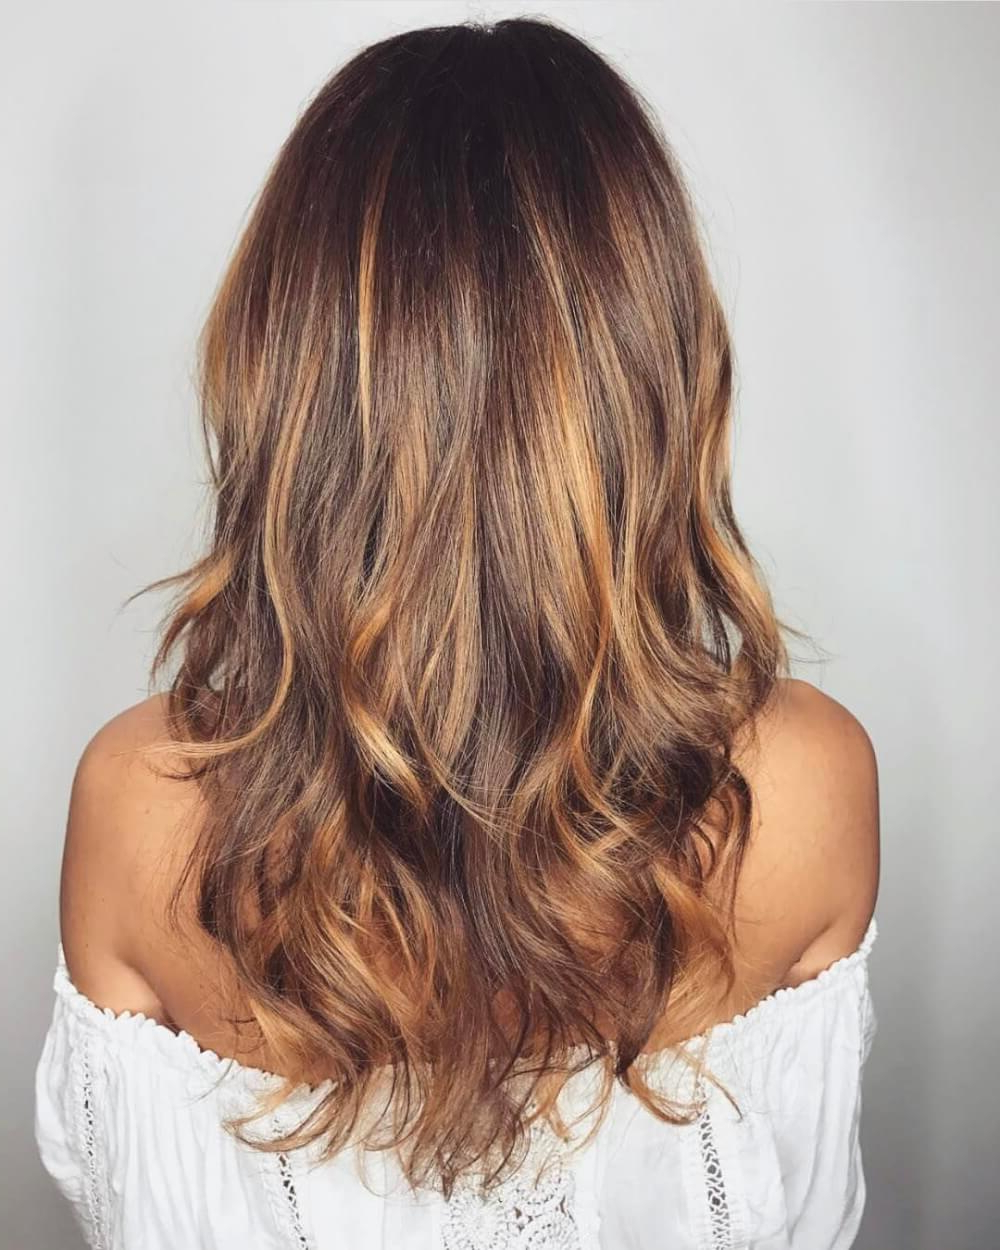 Preferred Long Layered Light Chocolate Brown Haircuts With 36 Light Brown Hair Colors That Are Blowing Up In 2019 (Gallery 8 of 20)